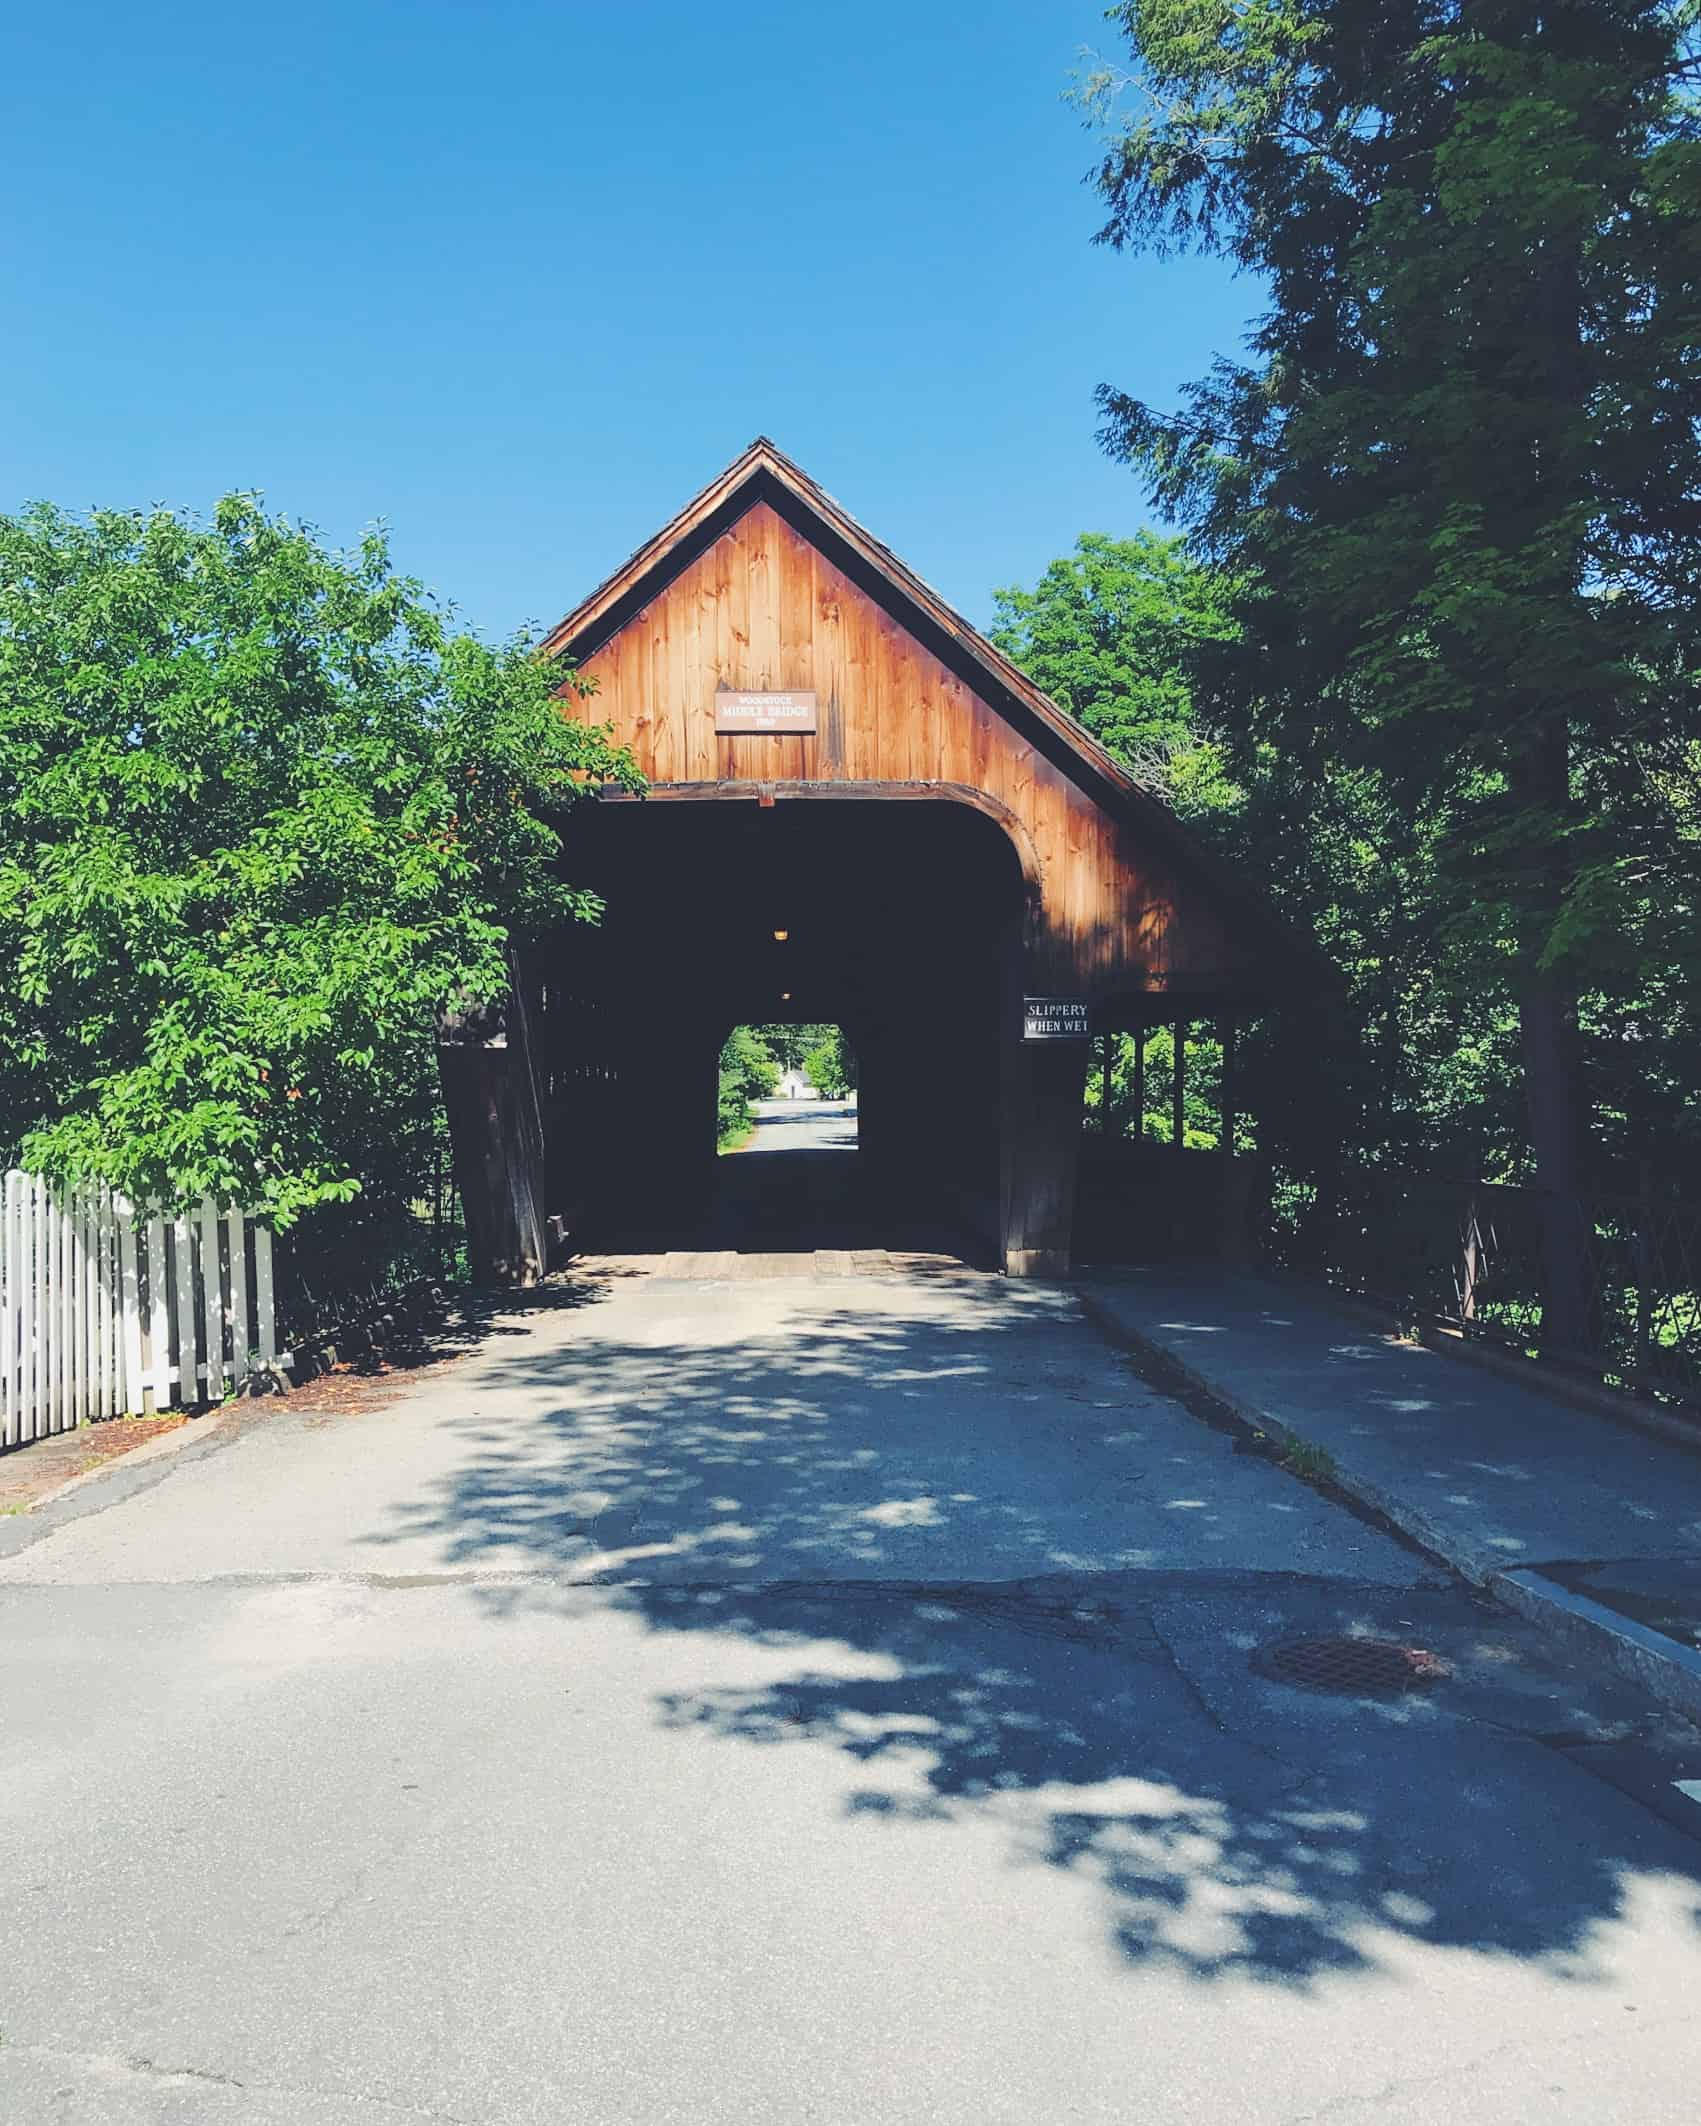 Travel Guide to Woodstock, VT